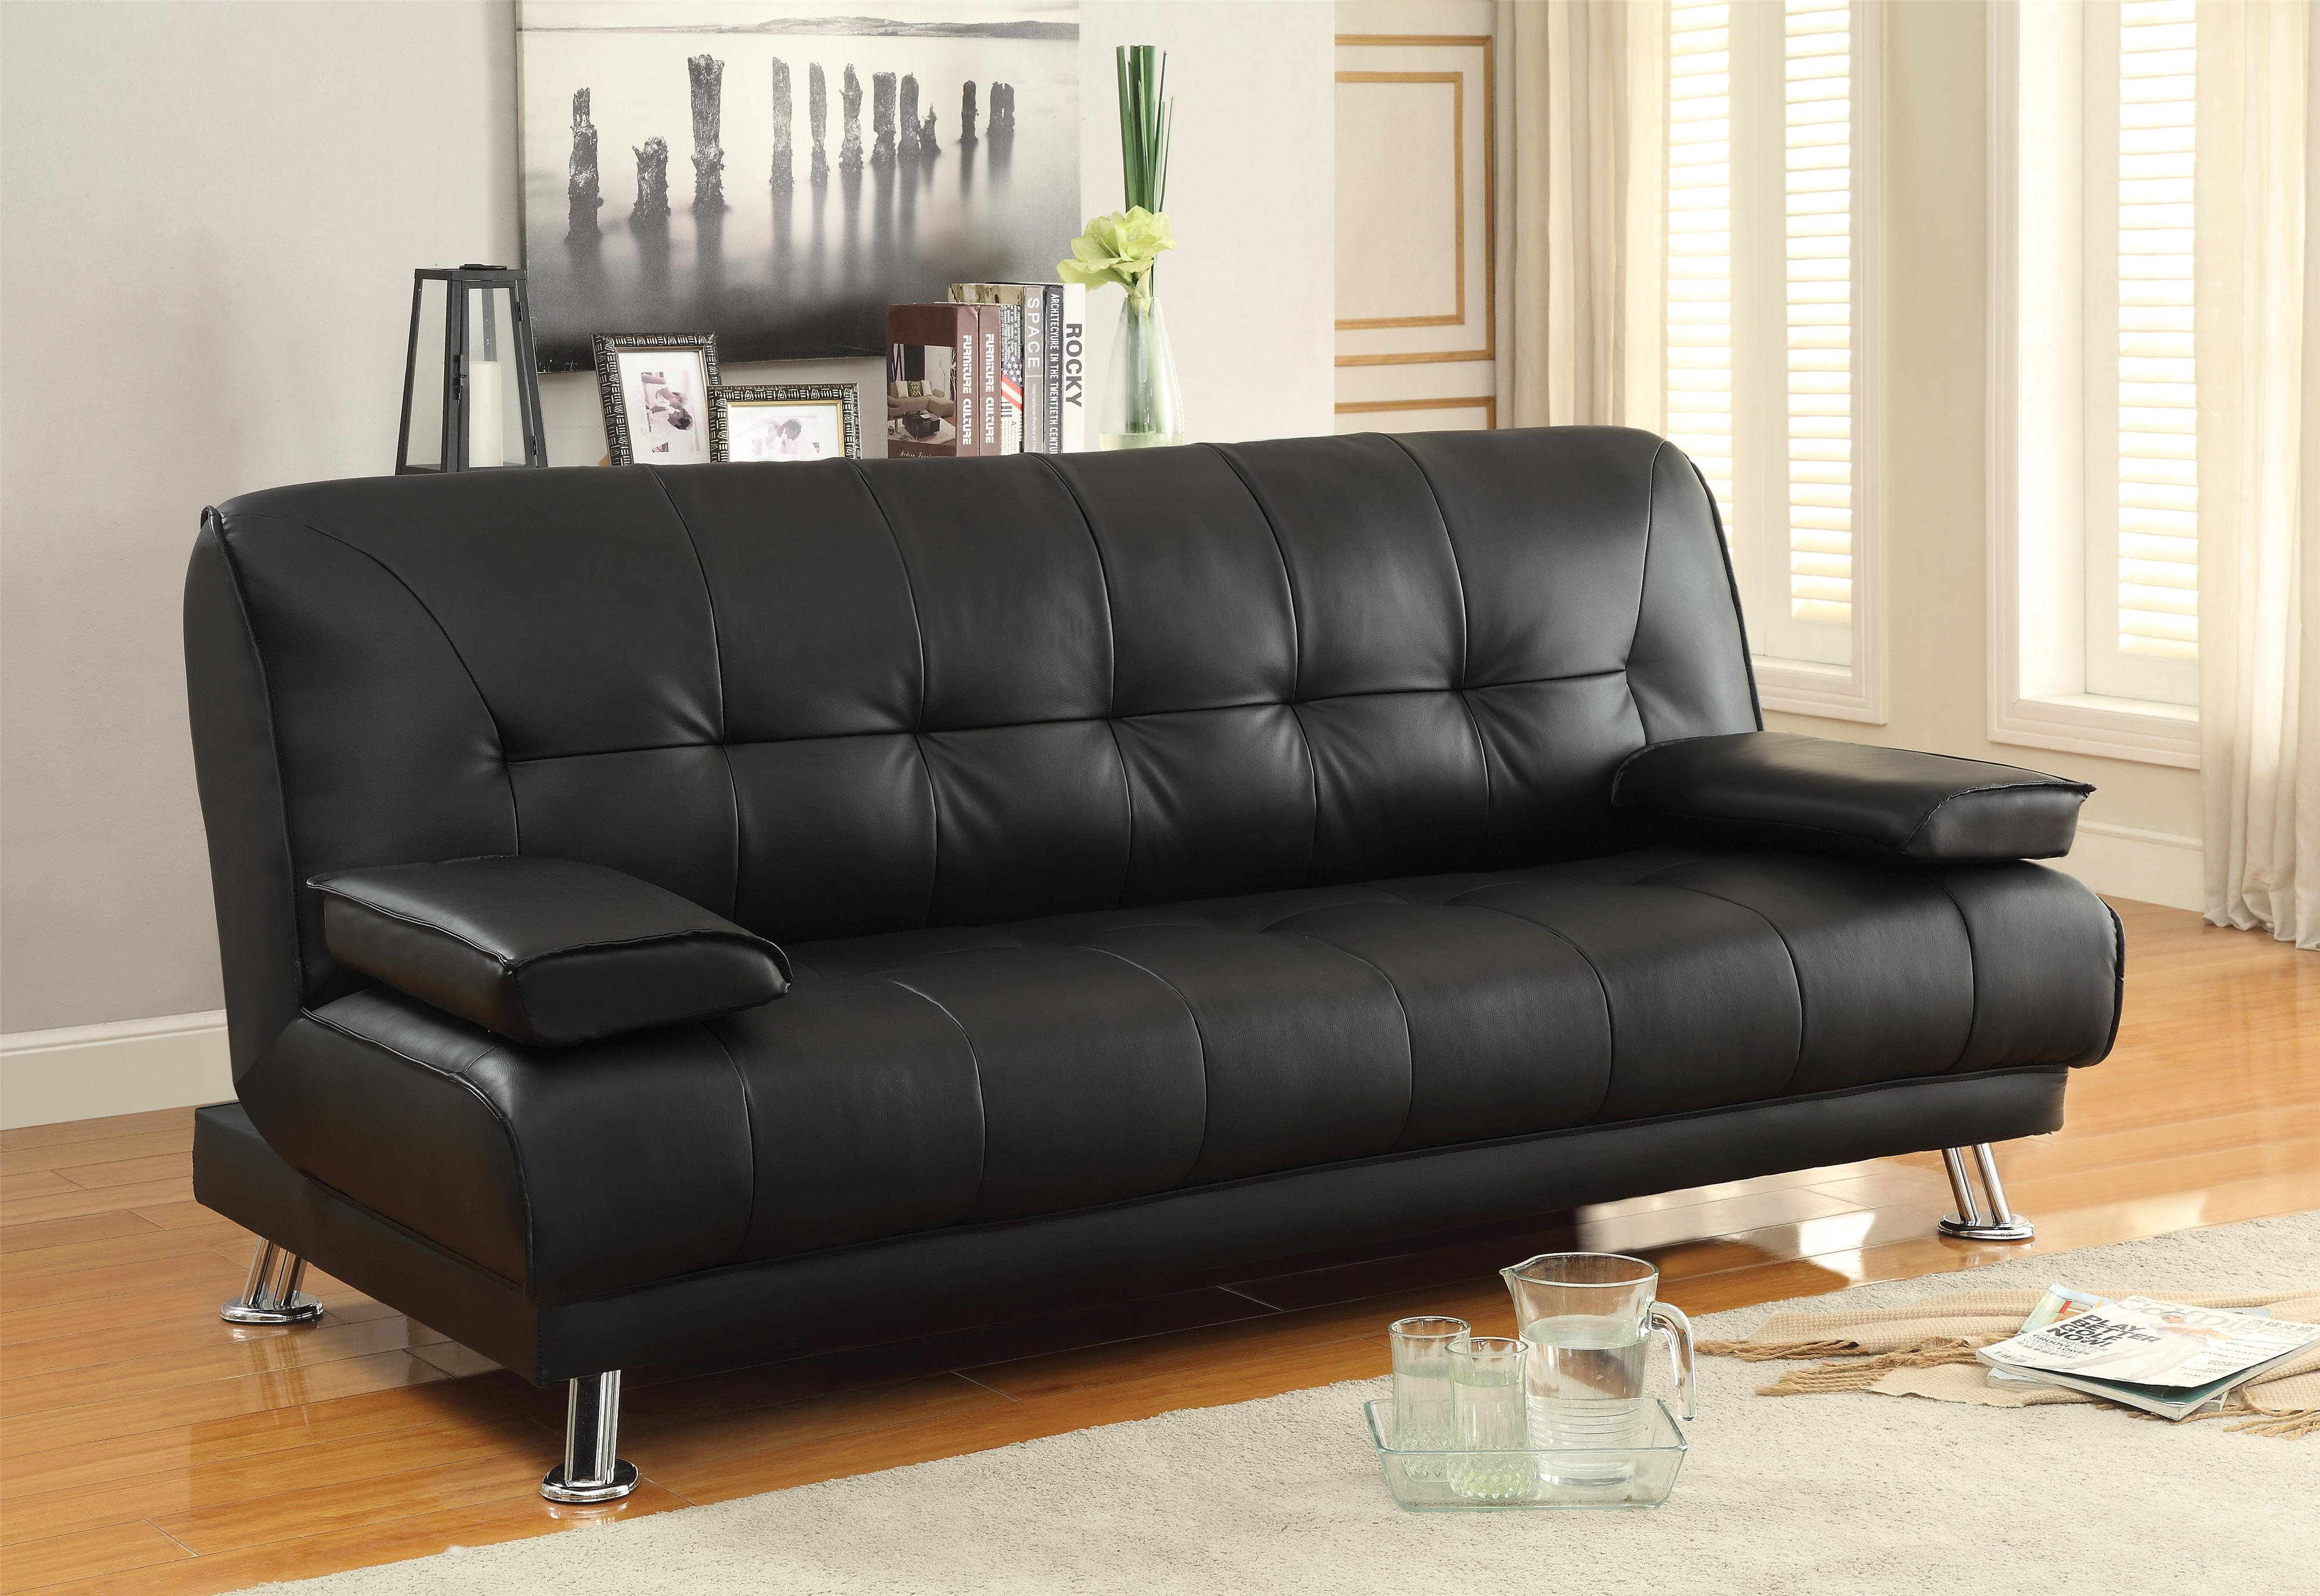 Sofa Beds and Futons Faux Leather Convertible Sofa Bed with Removable